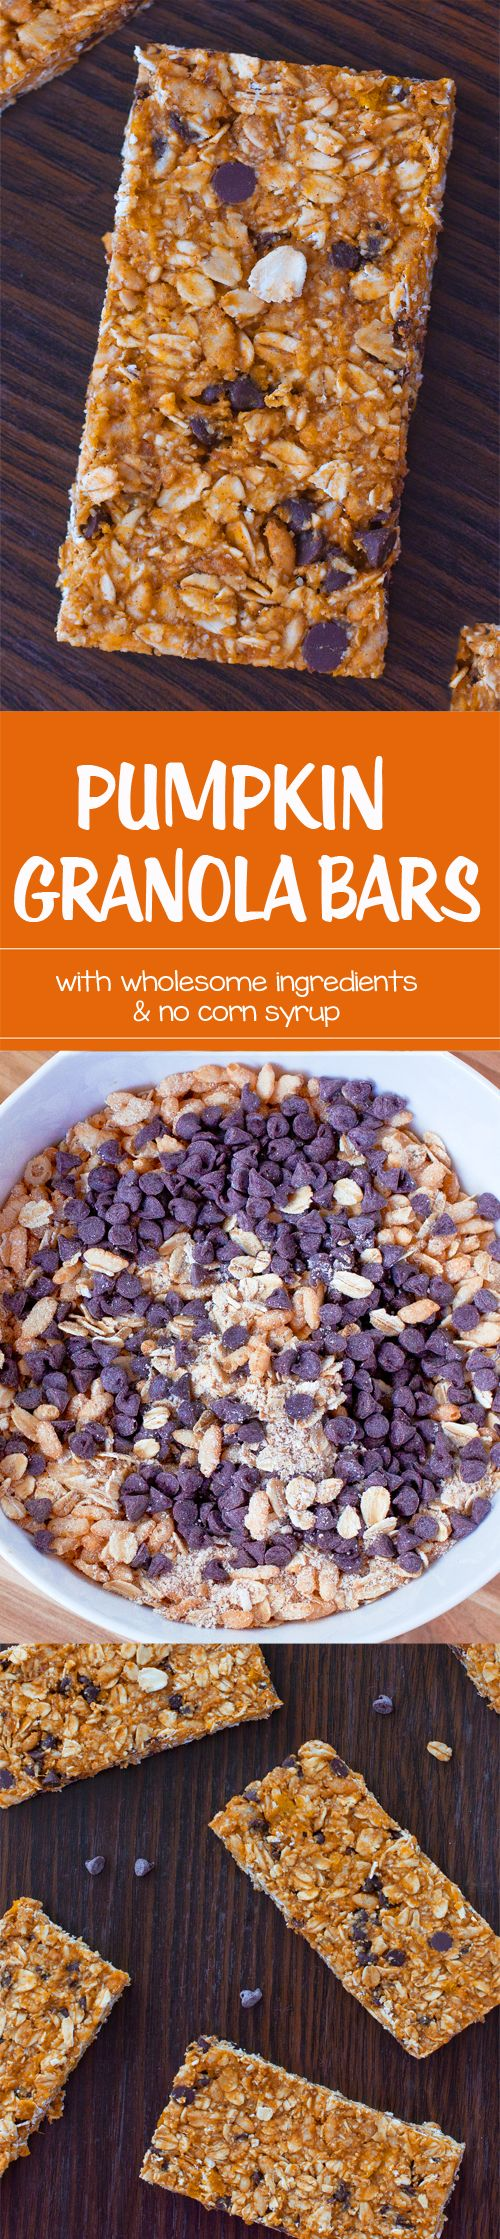 Soft & chewy pumpkin granola bars – with wholesome ingredients you can actually pronounce. Full recipe: http://chocolatecoveredkatie.com/2016/10/17/pumpkin-granola-bars-recipe/